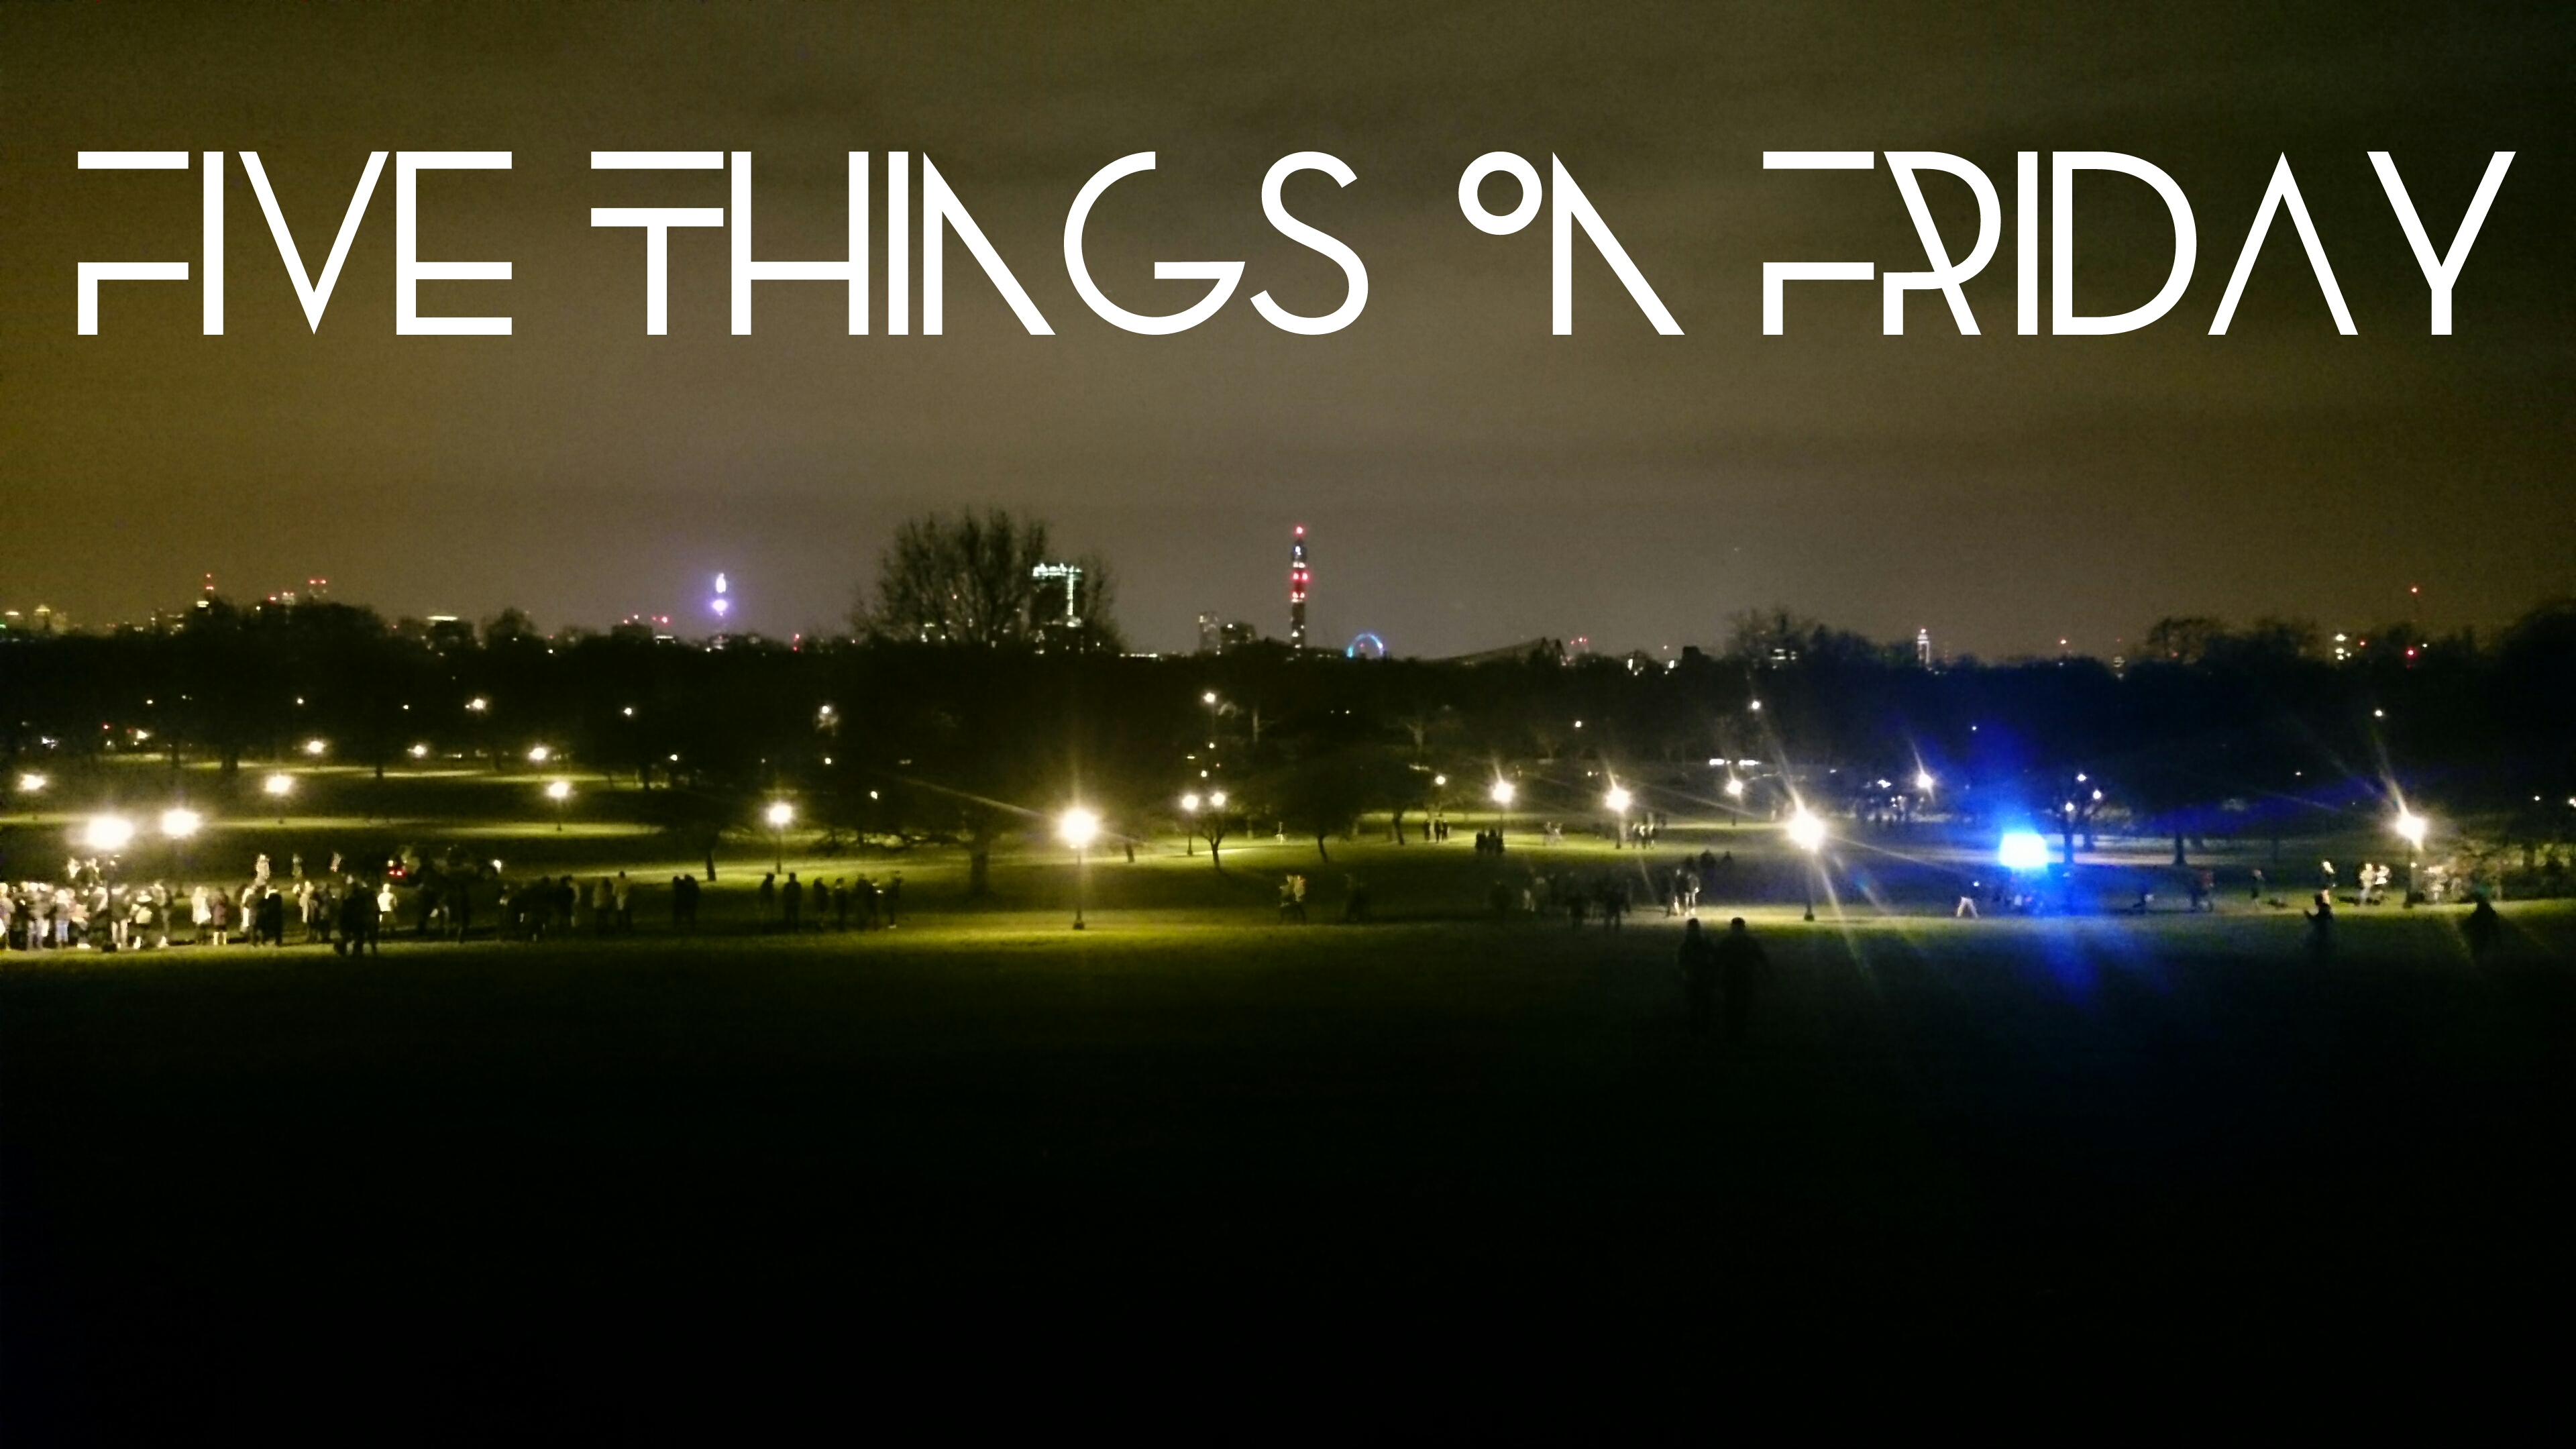 Five things on Friday #106